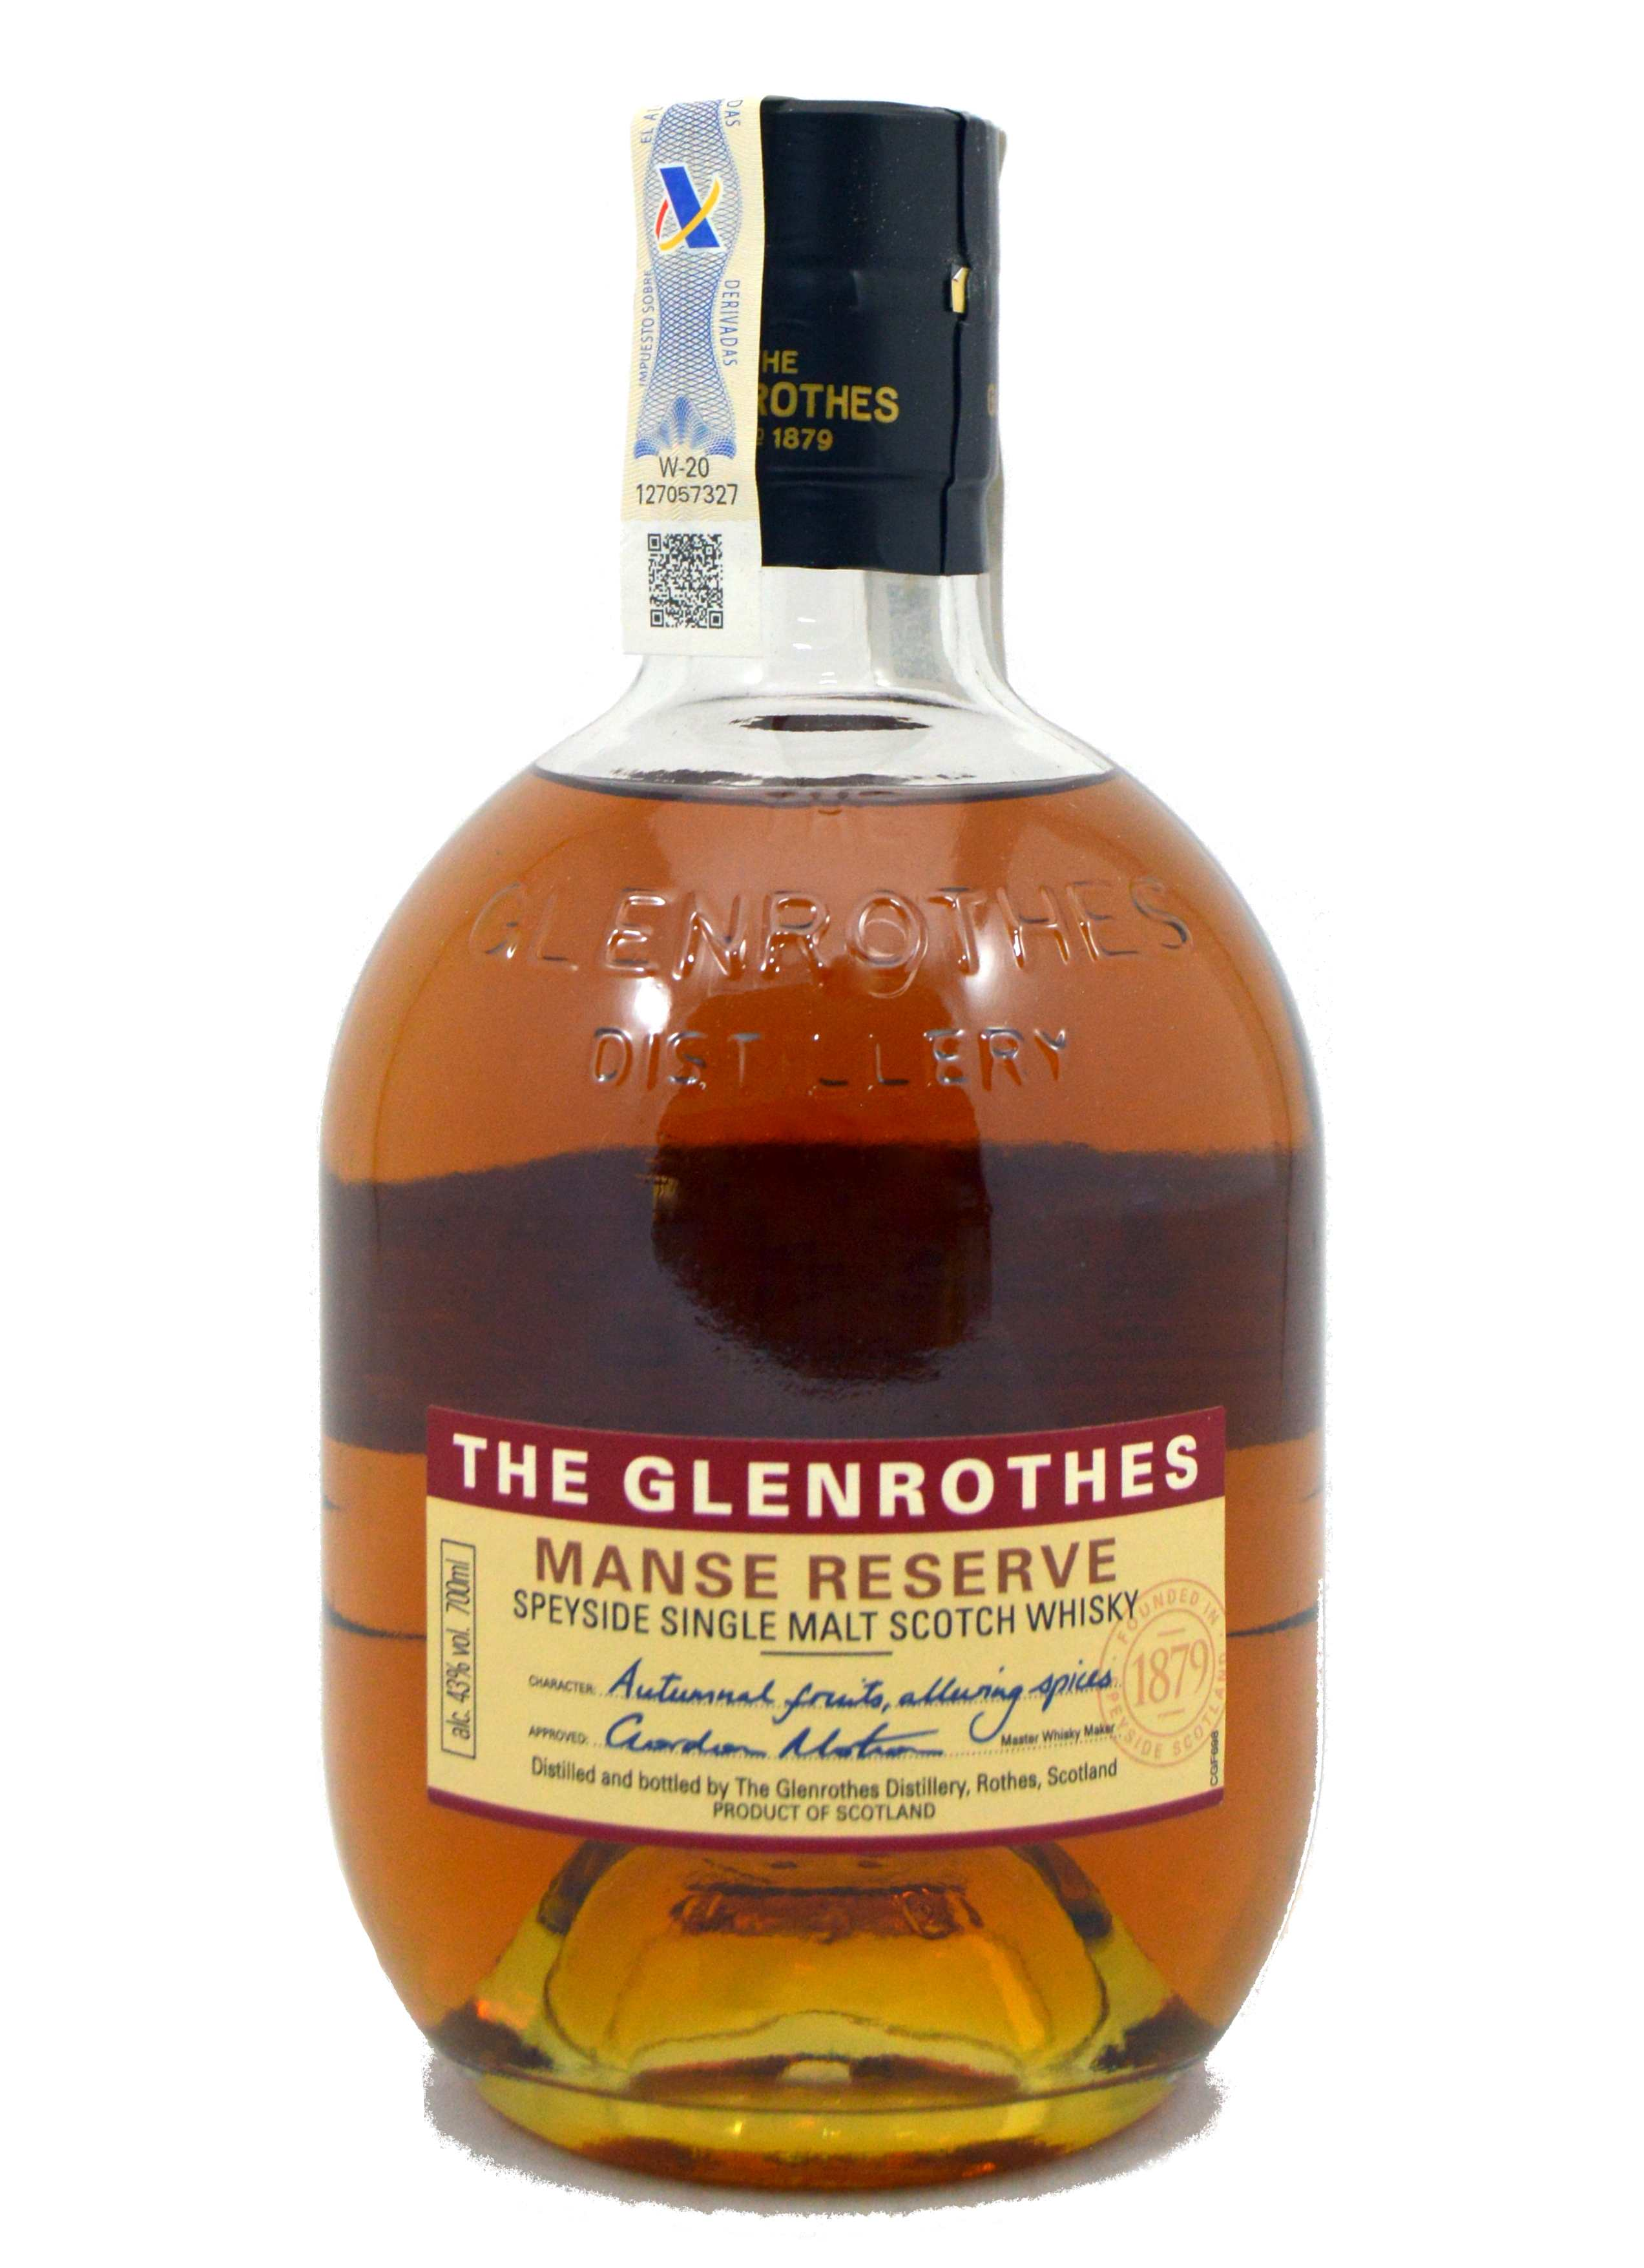 The Glenrothes Manse Reserve